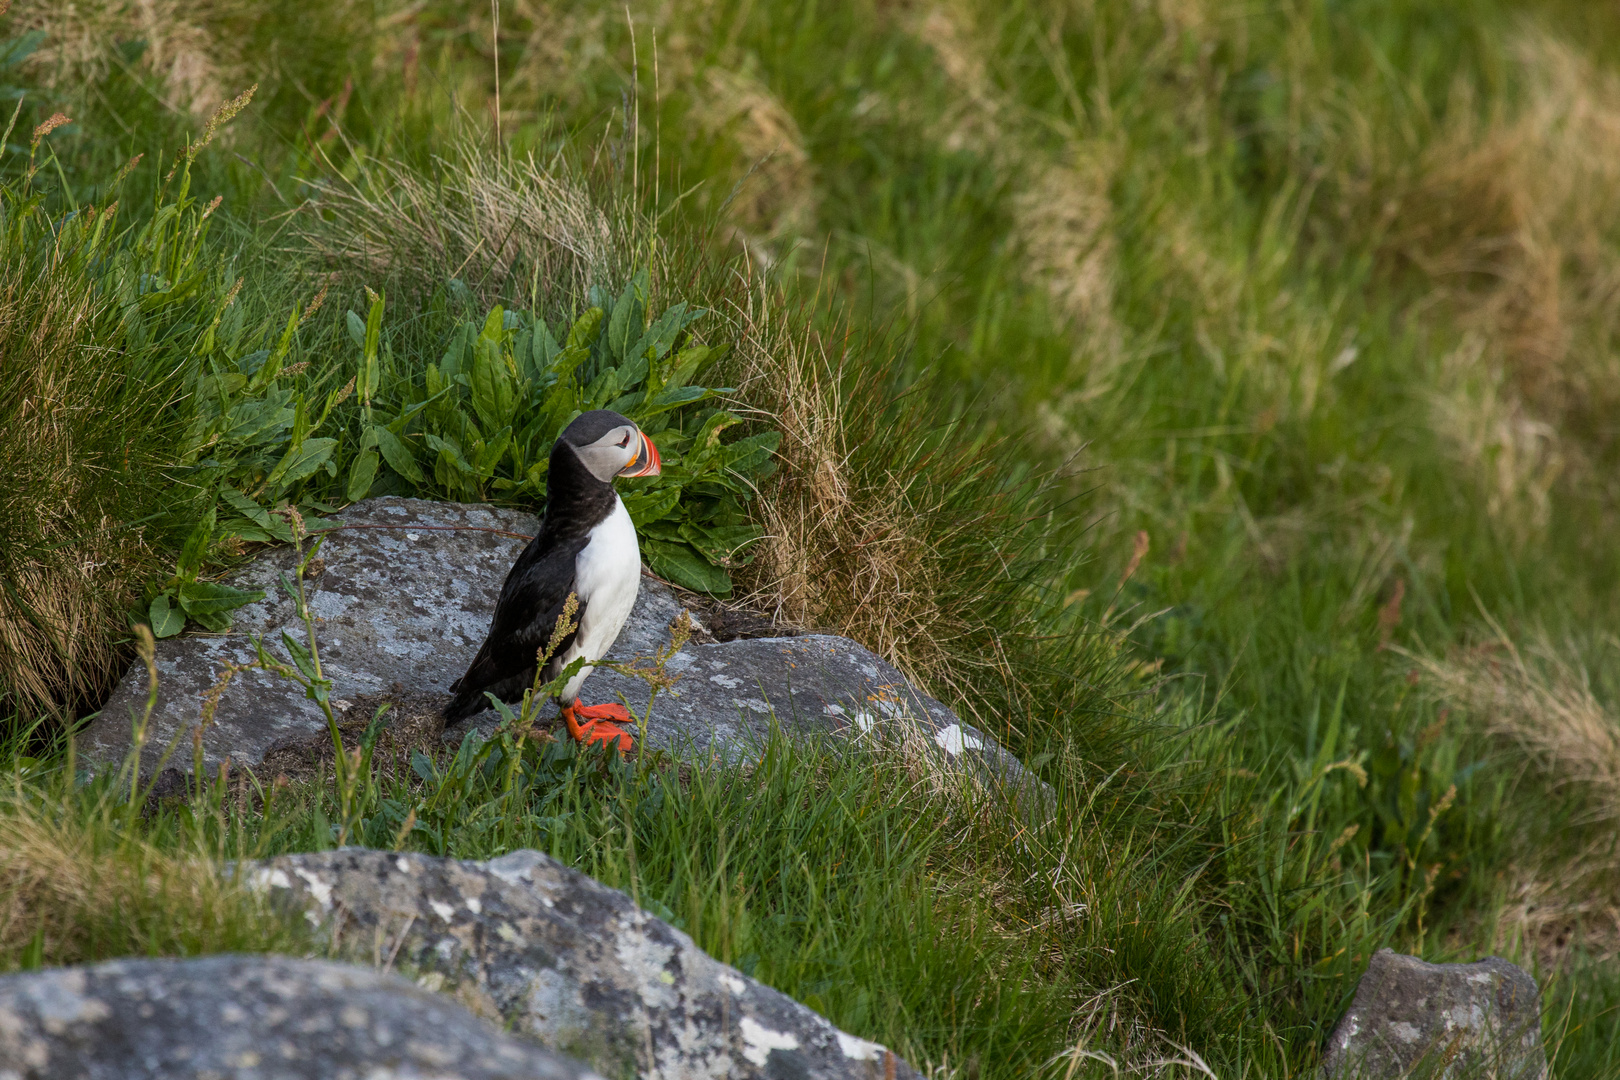 Lonesome Puffin